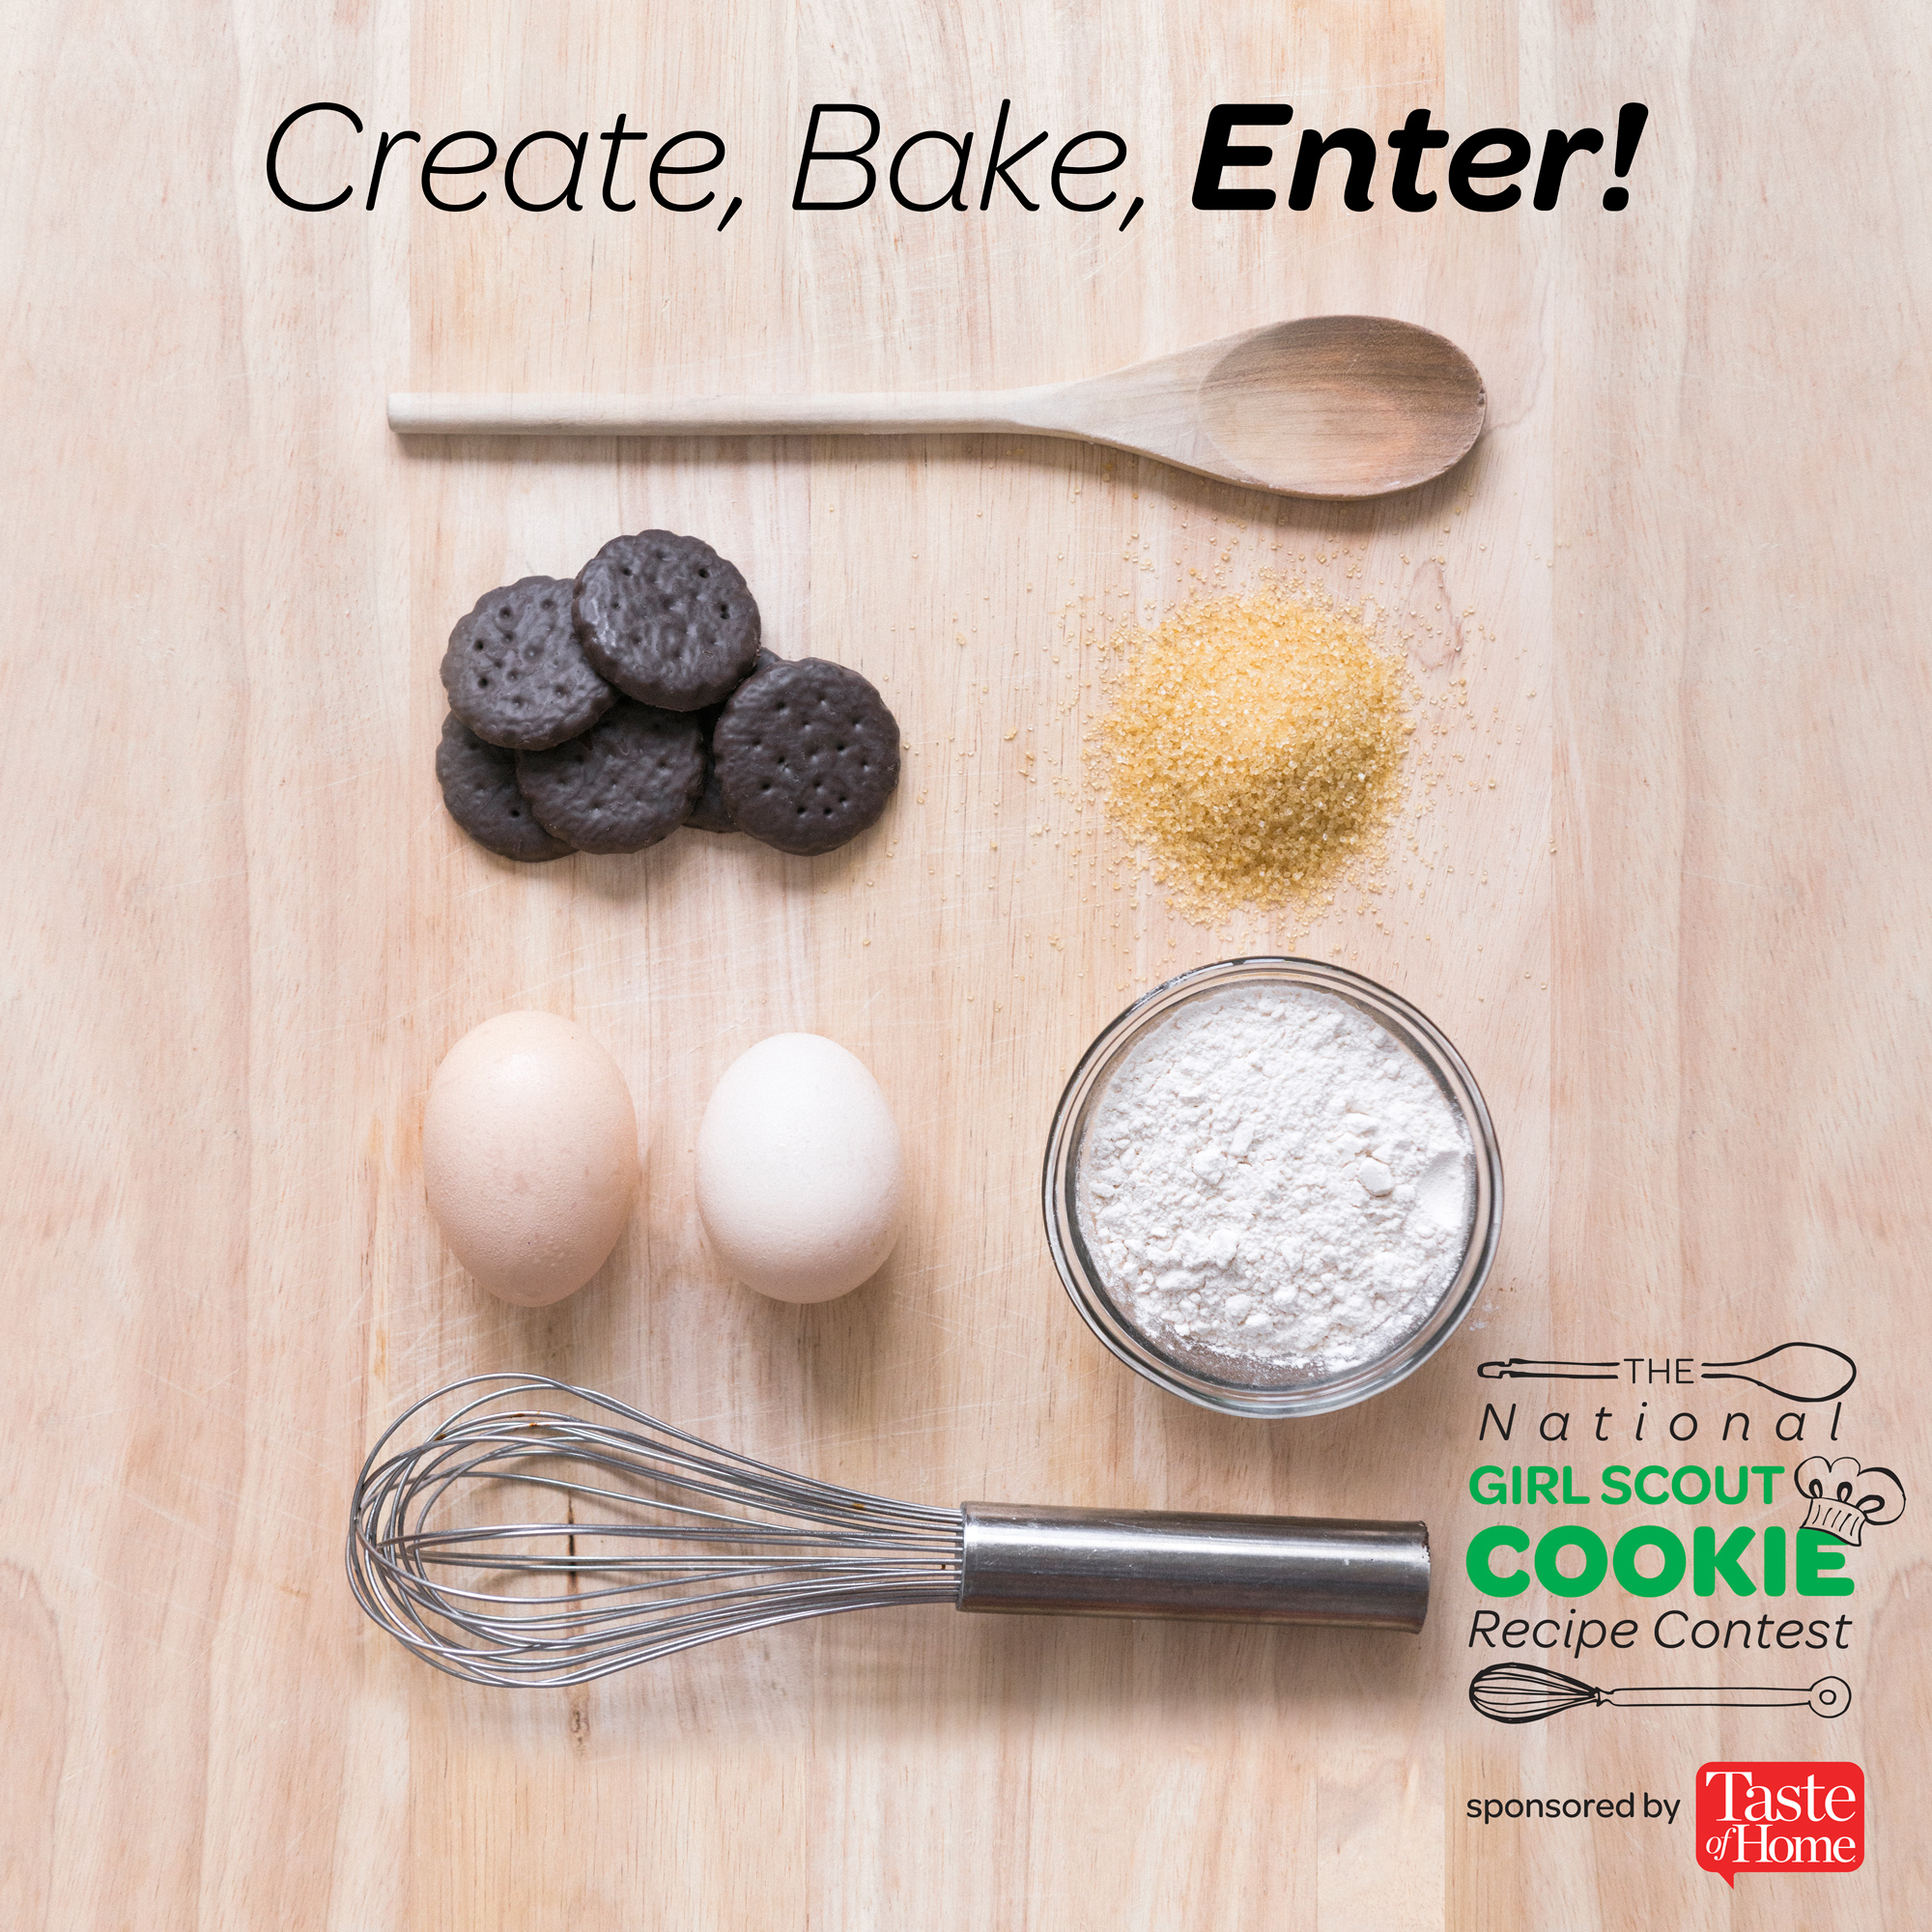 Enter The Girl Scout Cookie Recipe Contest